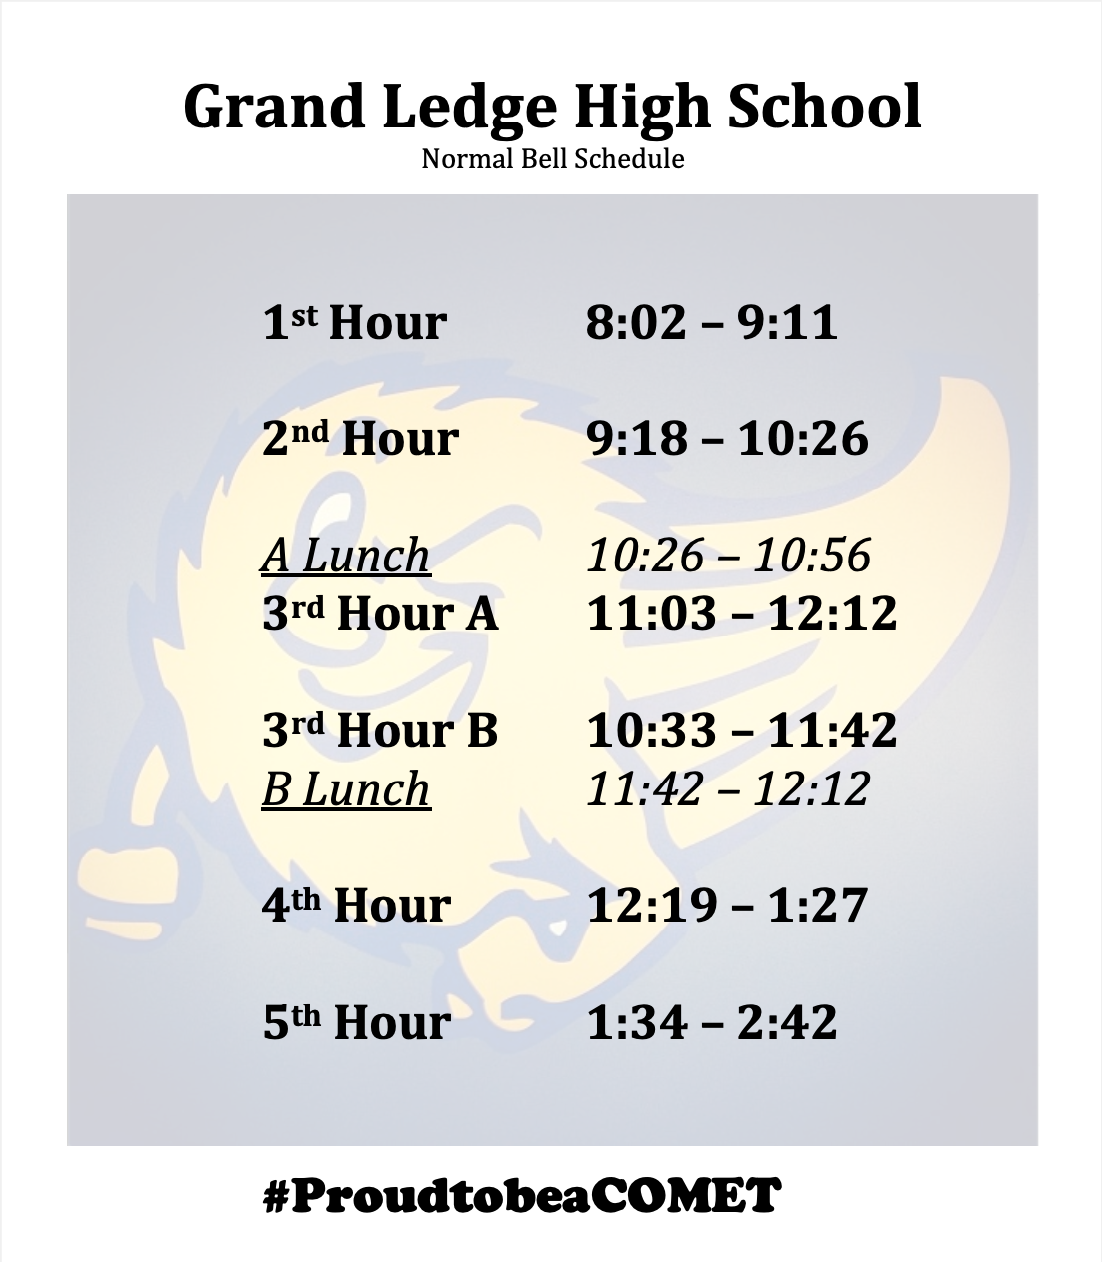 Normal Bell Schedule for 2021-22 school year